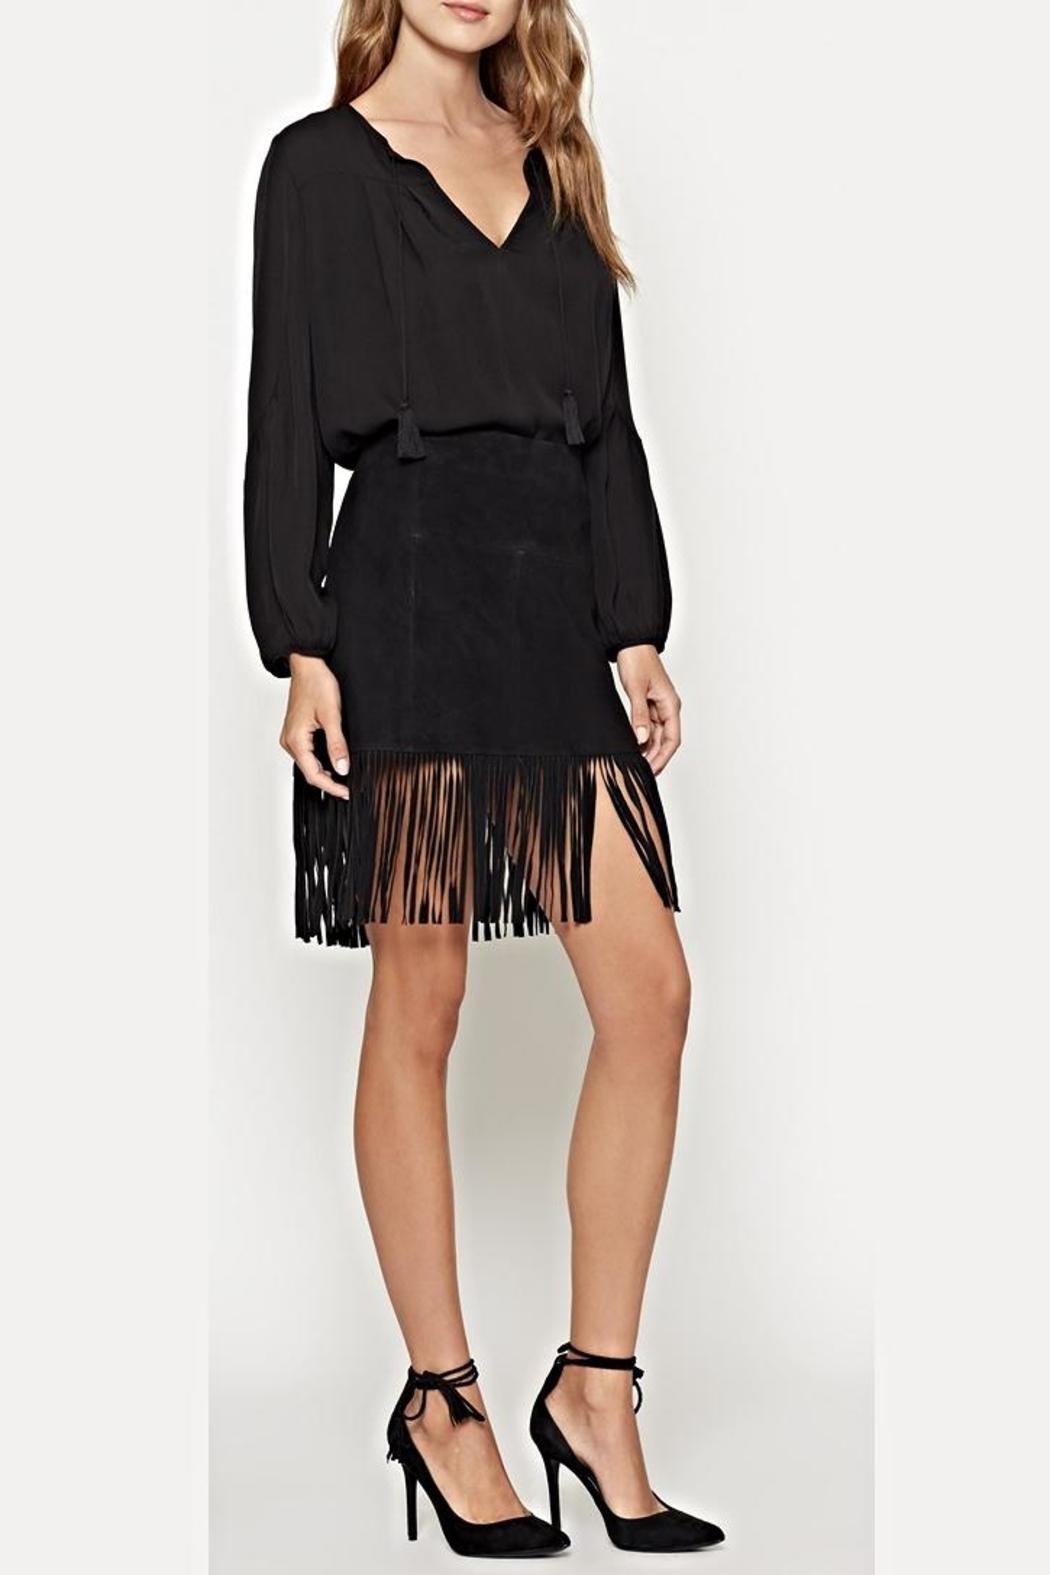 Joie Lozita Suede Skirt - Front Cropped Image